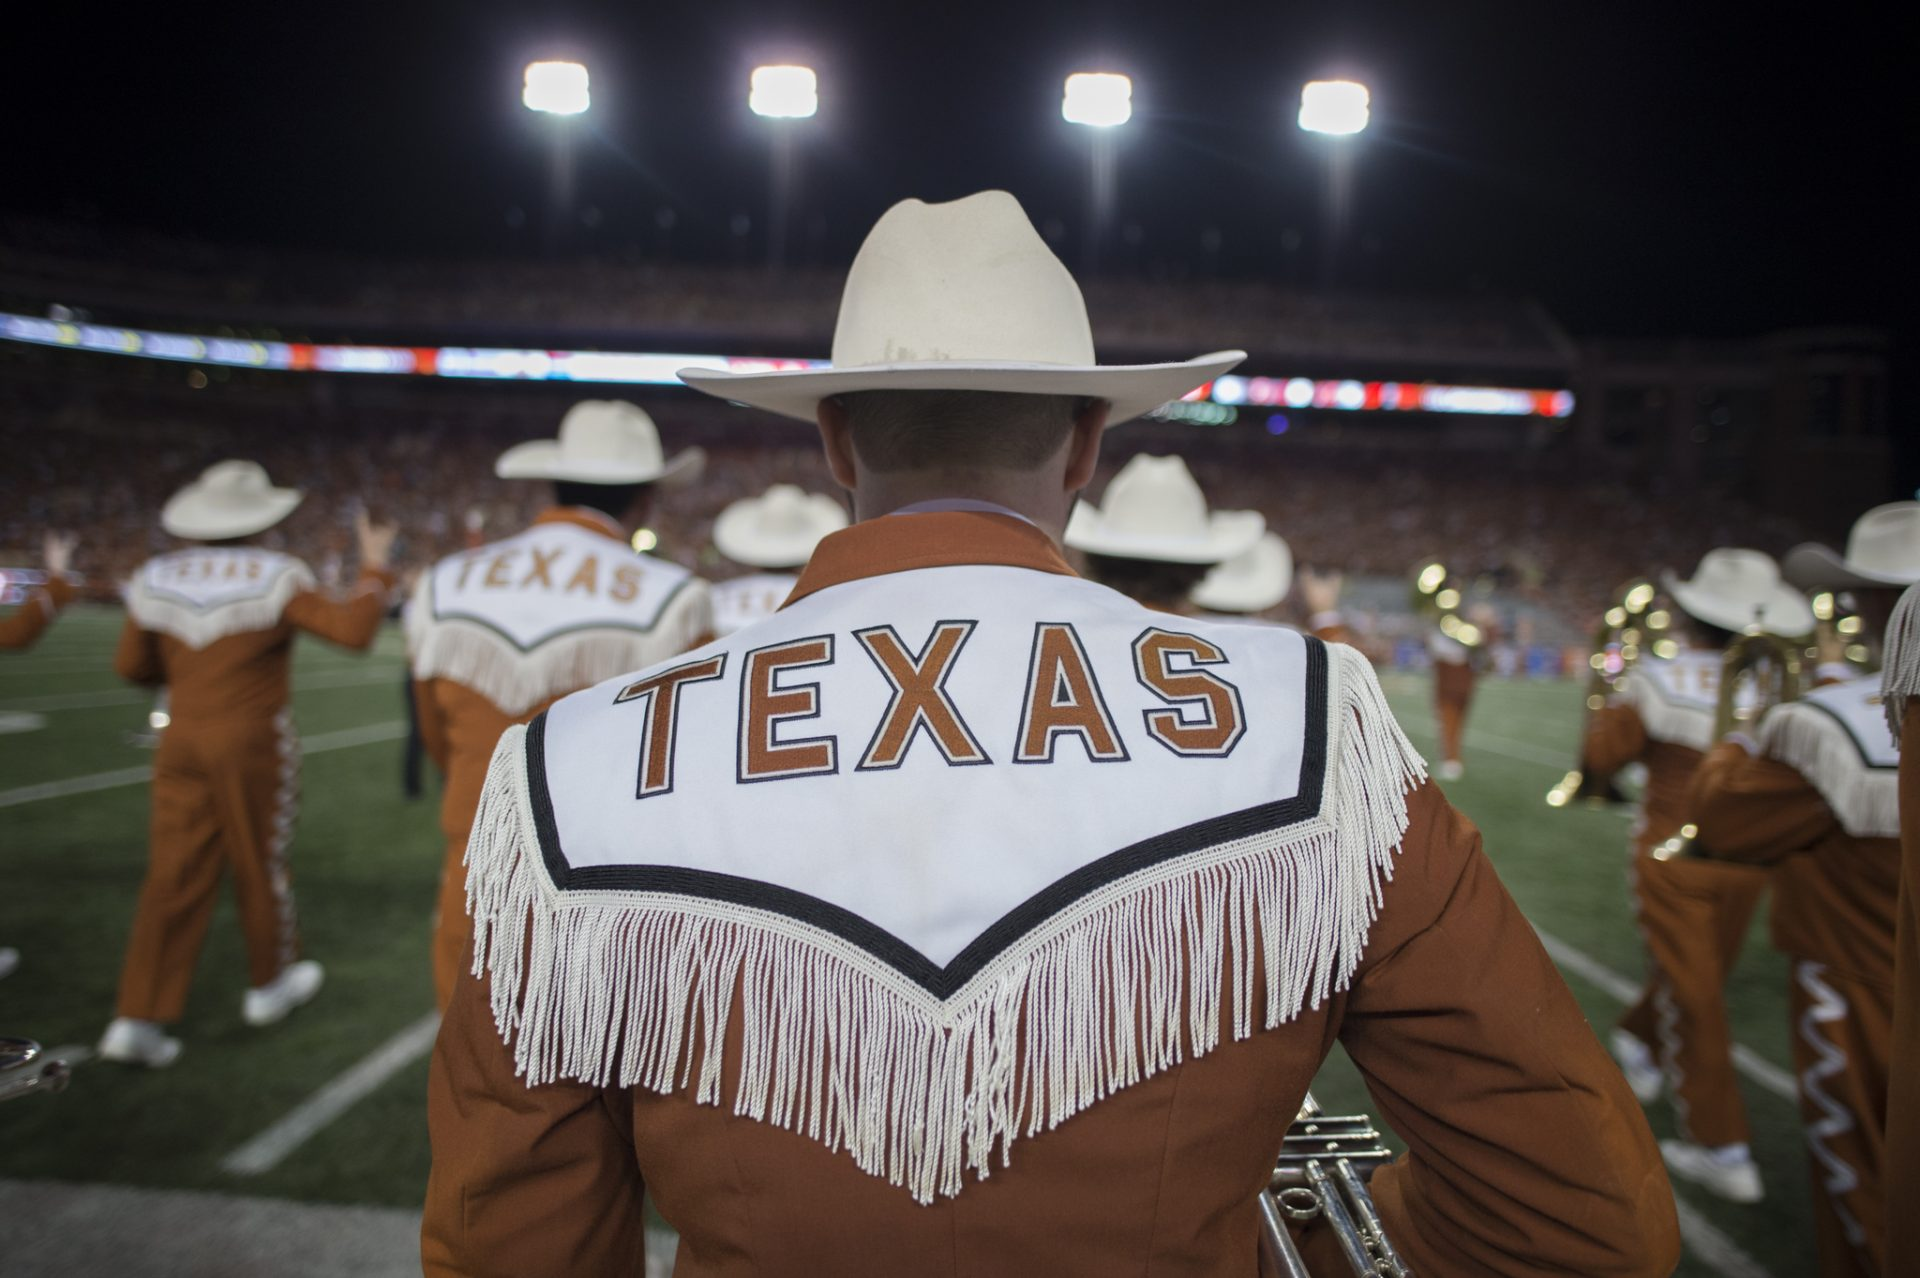 texas athletic cheerleader wearing cowboy hat on the football field